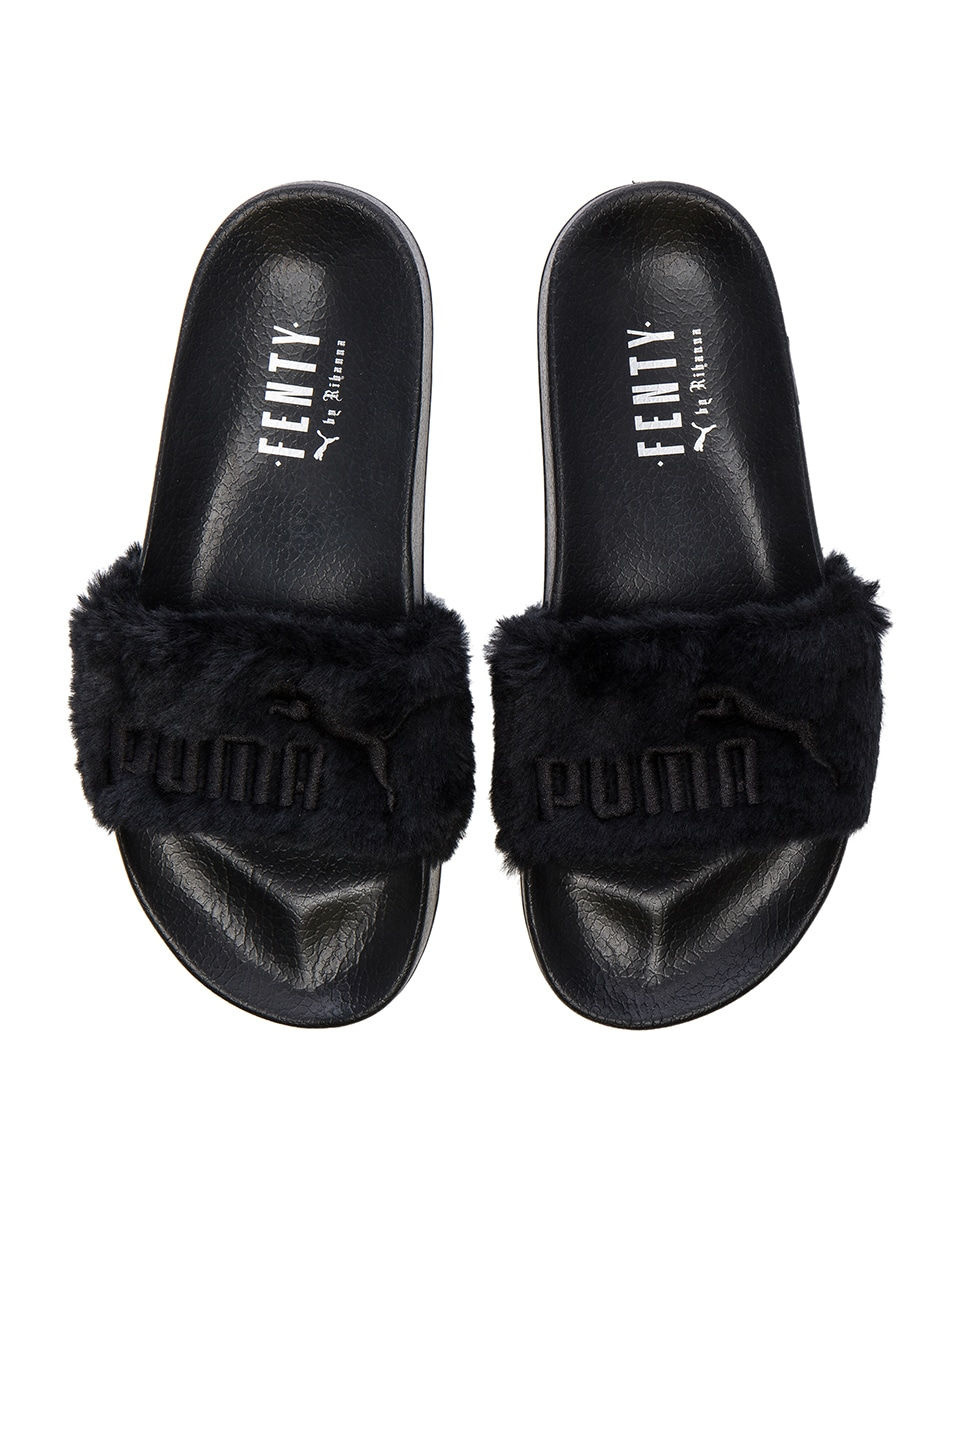 Image 1 of Fenty by Puma Leadcat Faux Fur Slide Sandals in Black   Silver 46c9462d38